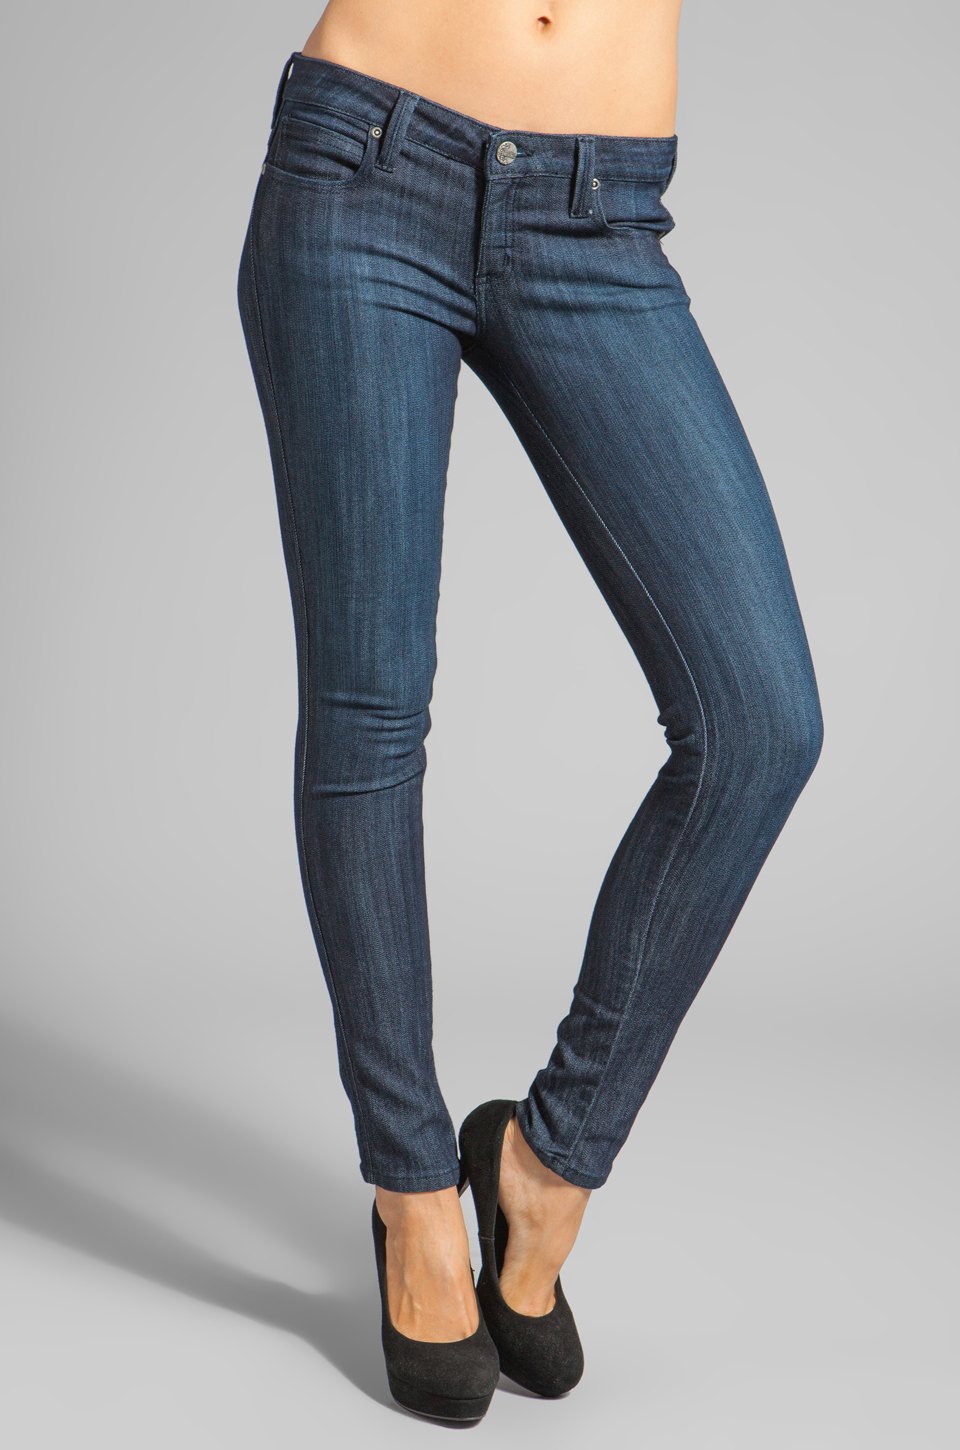 Ankle Jeans For Women